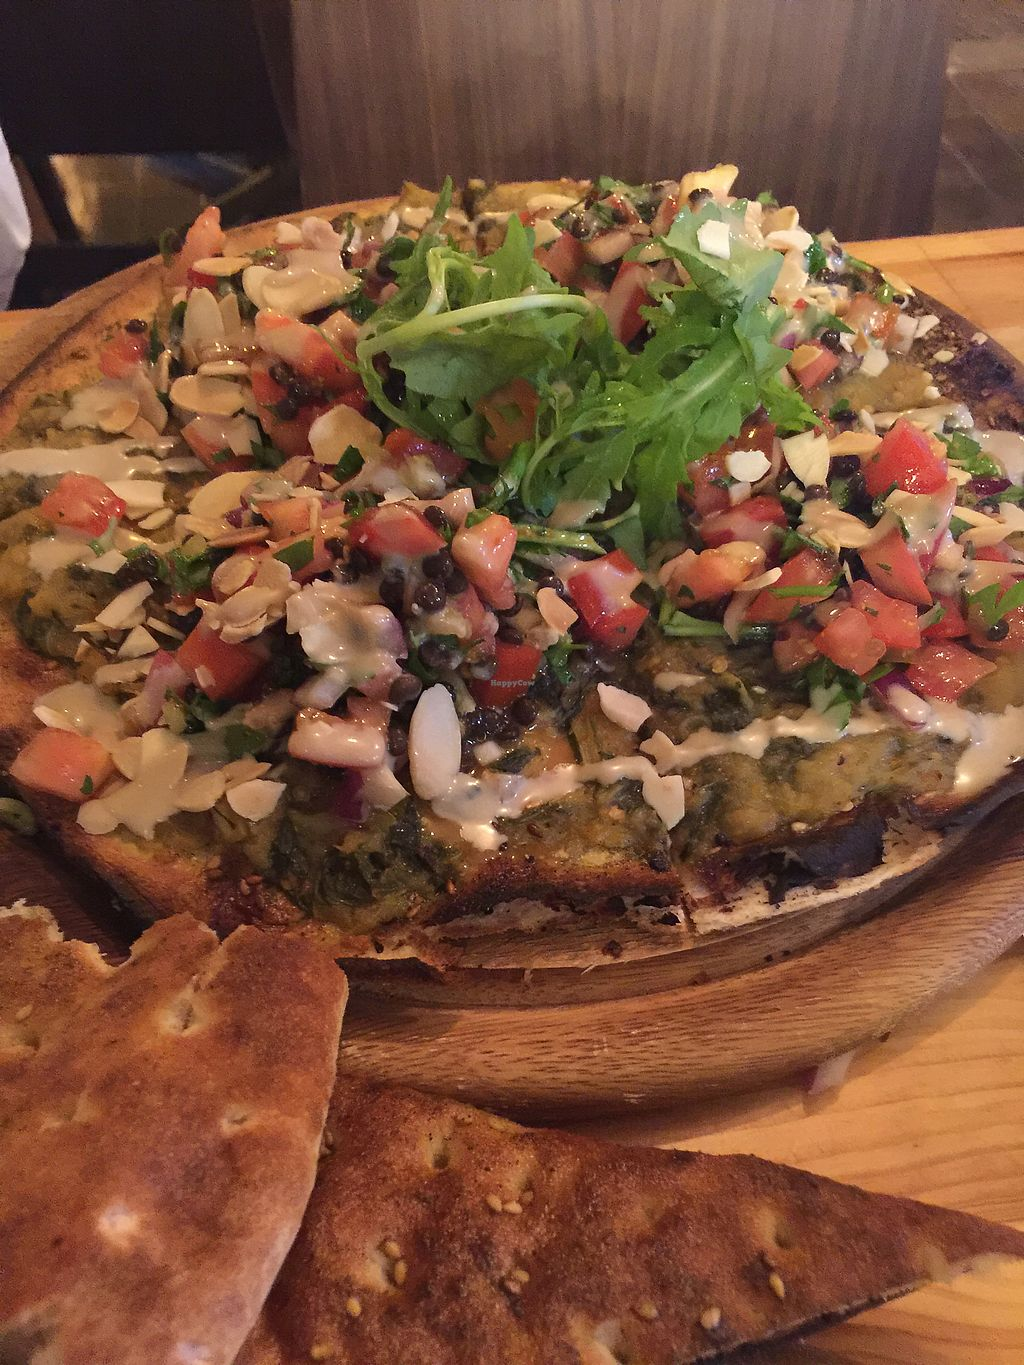 """Photo of Umm Kulthum  by <a href=""""/members/profile/TaylorTheggie"""">TaylorTheggie</a> <br/>This was the best dish.  <br/> October 2, 2017  - <a href='/contact/abuse/image/75877/311089'>Report</a>"""